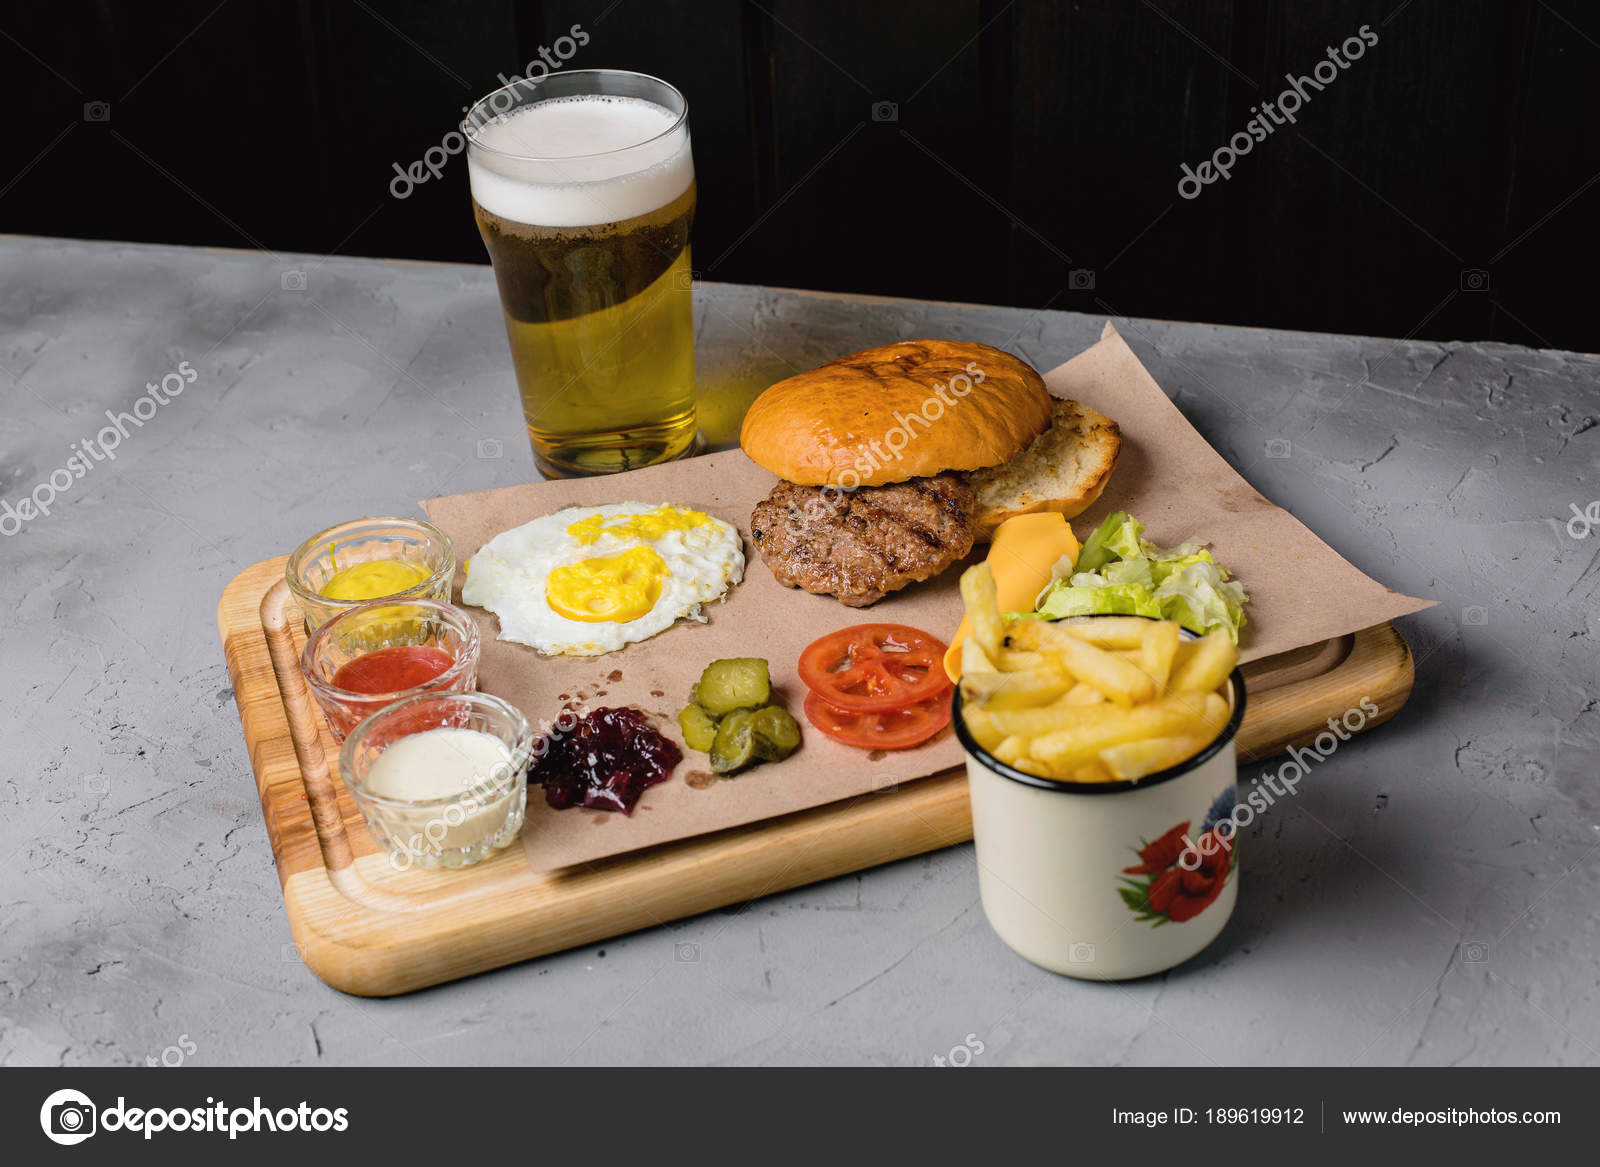 Beer french fries adorn burger yourself concrete background stock beer and french fries adorn burger do it yourself on a concrete background photo by kiforpic solutioingenieria Images